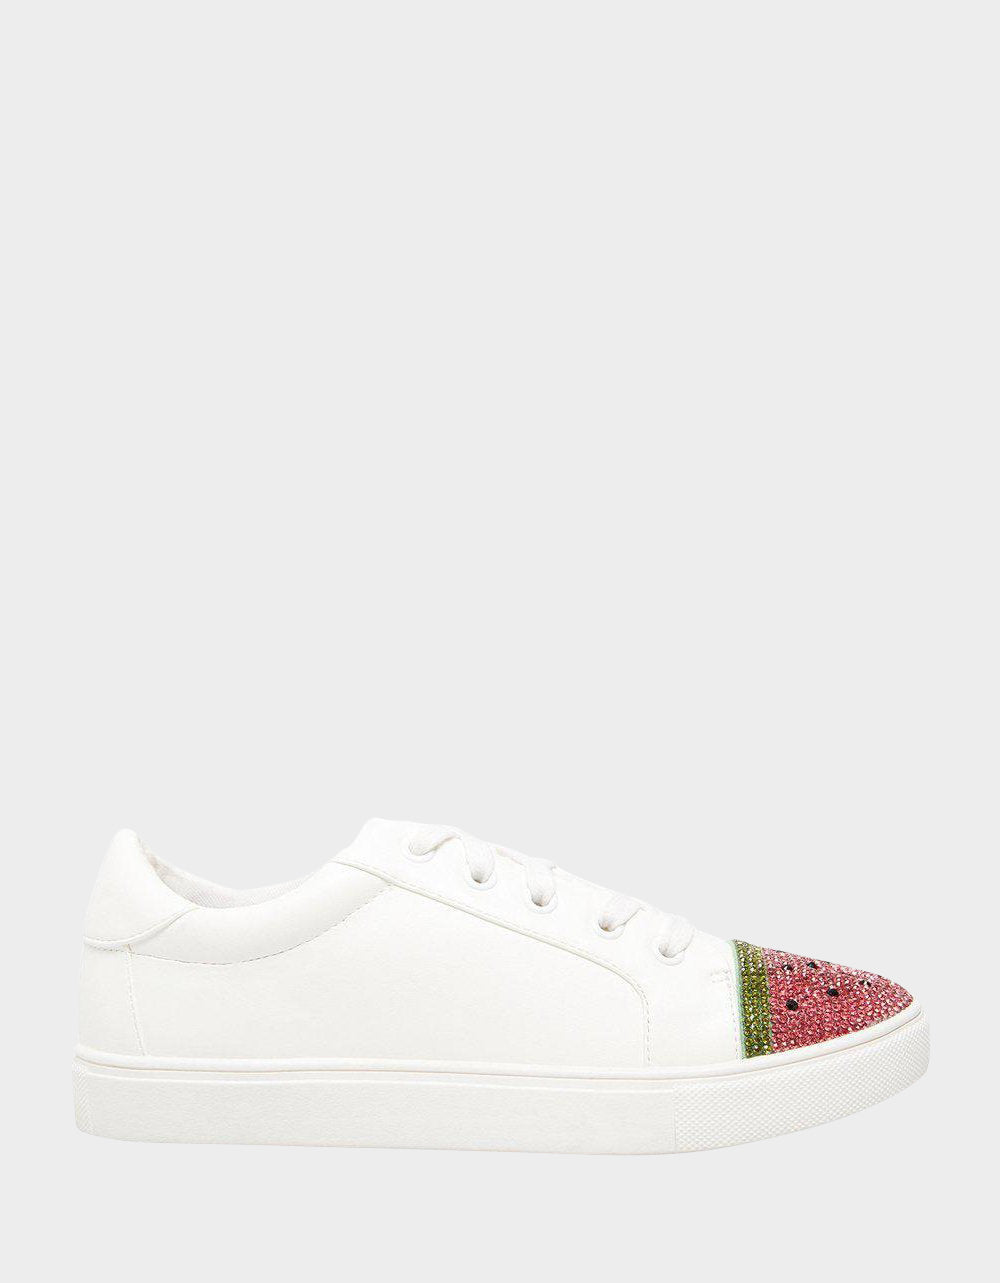 MELON WHITE MULTI - SHOES - Betsey Johnson